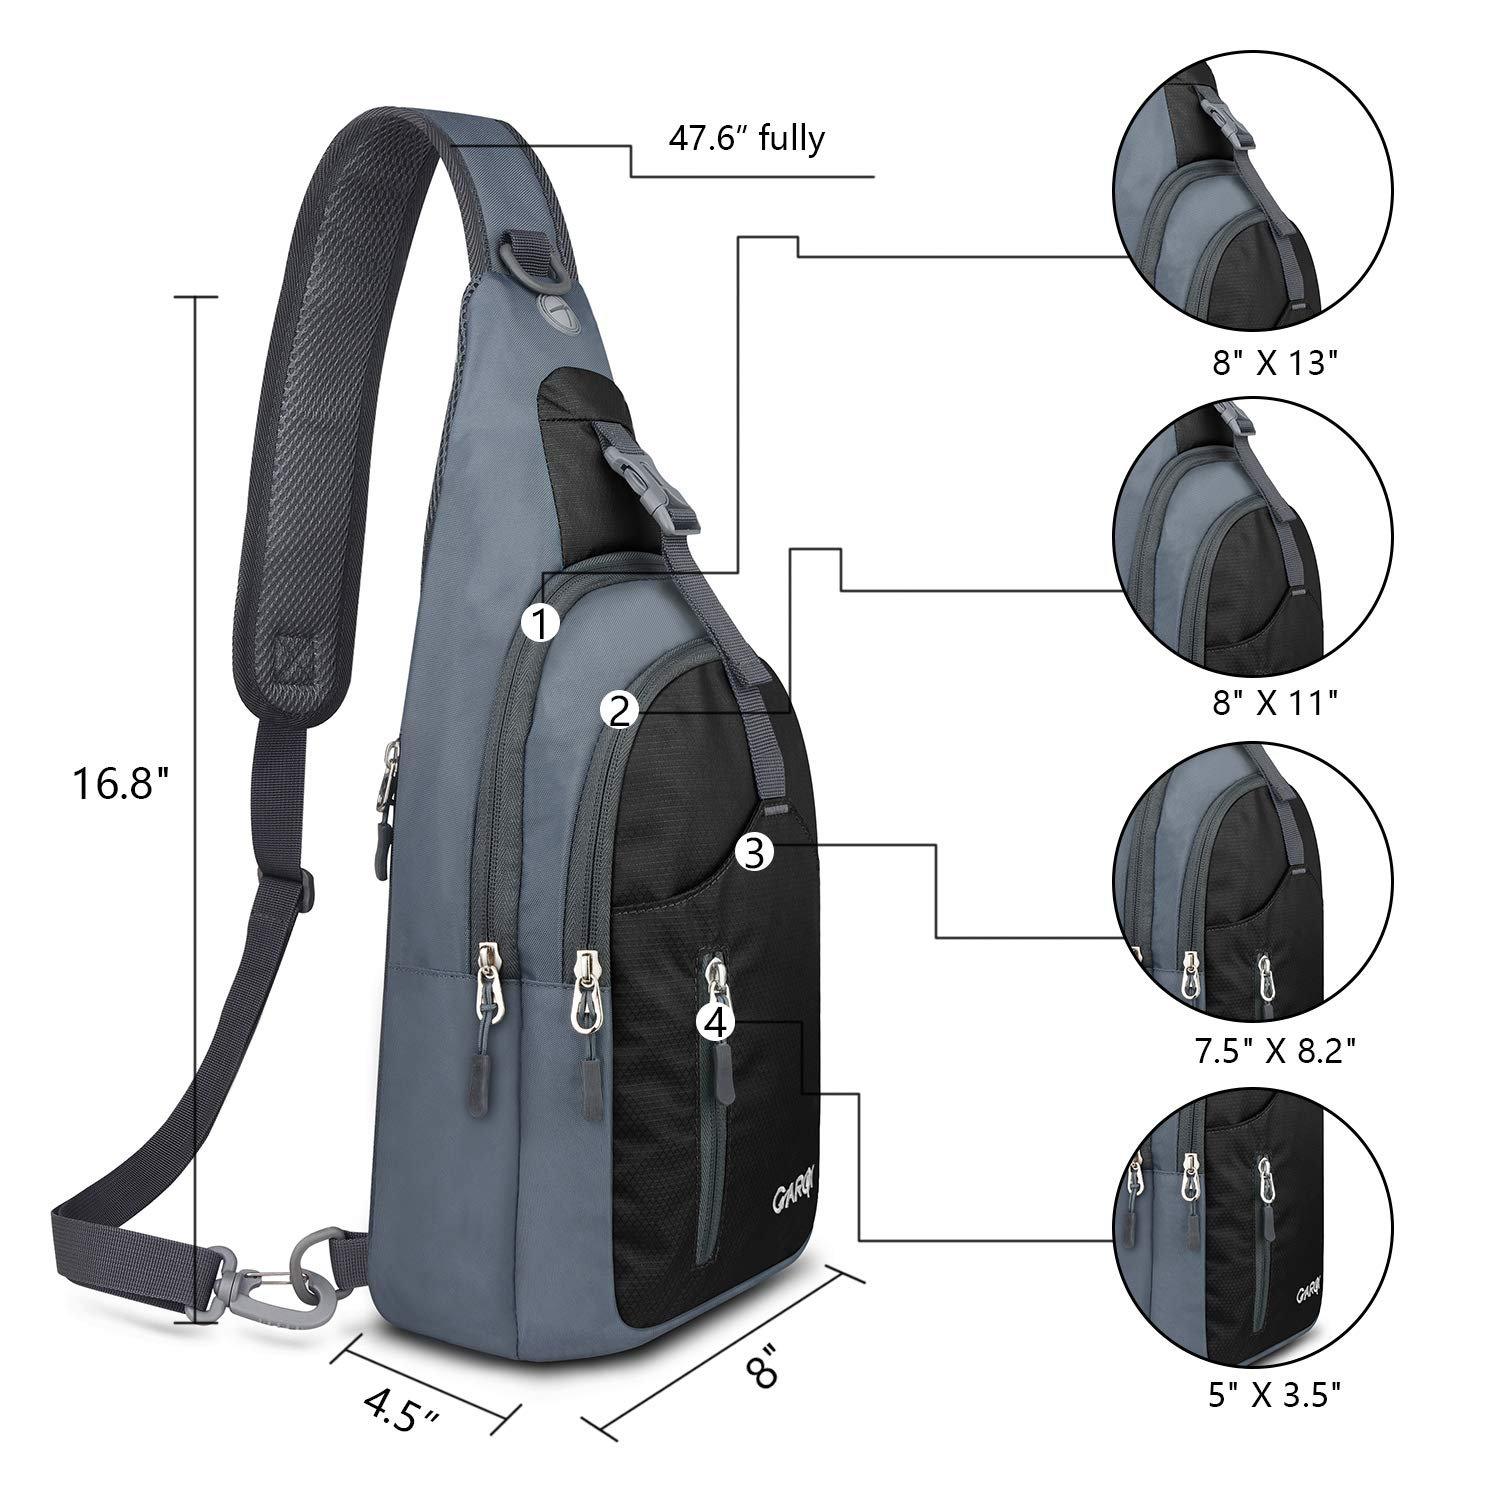 f84a351213db Amazon.com  CARQI Sling Bag Shoulder Backpack Crossbody Purse for Hiking  Camping  Clothing